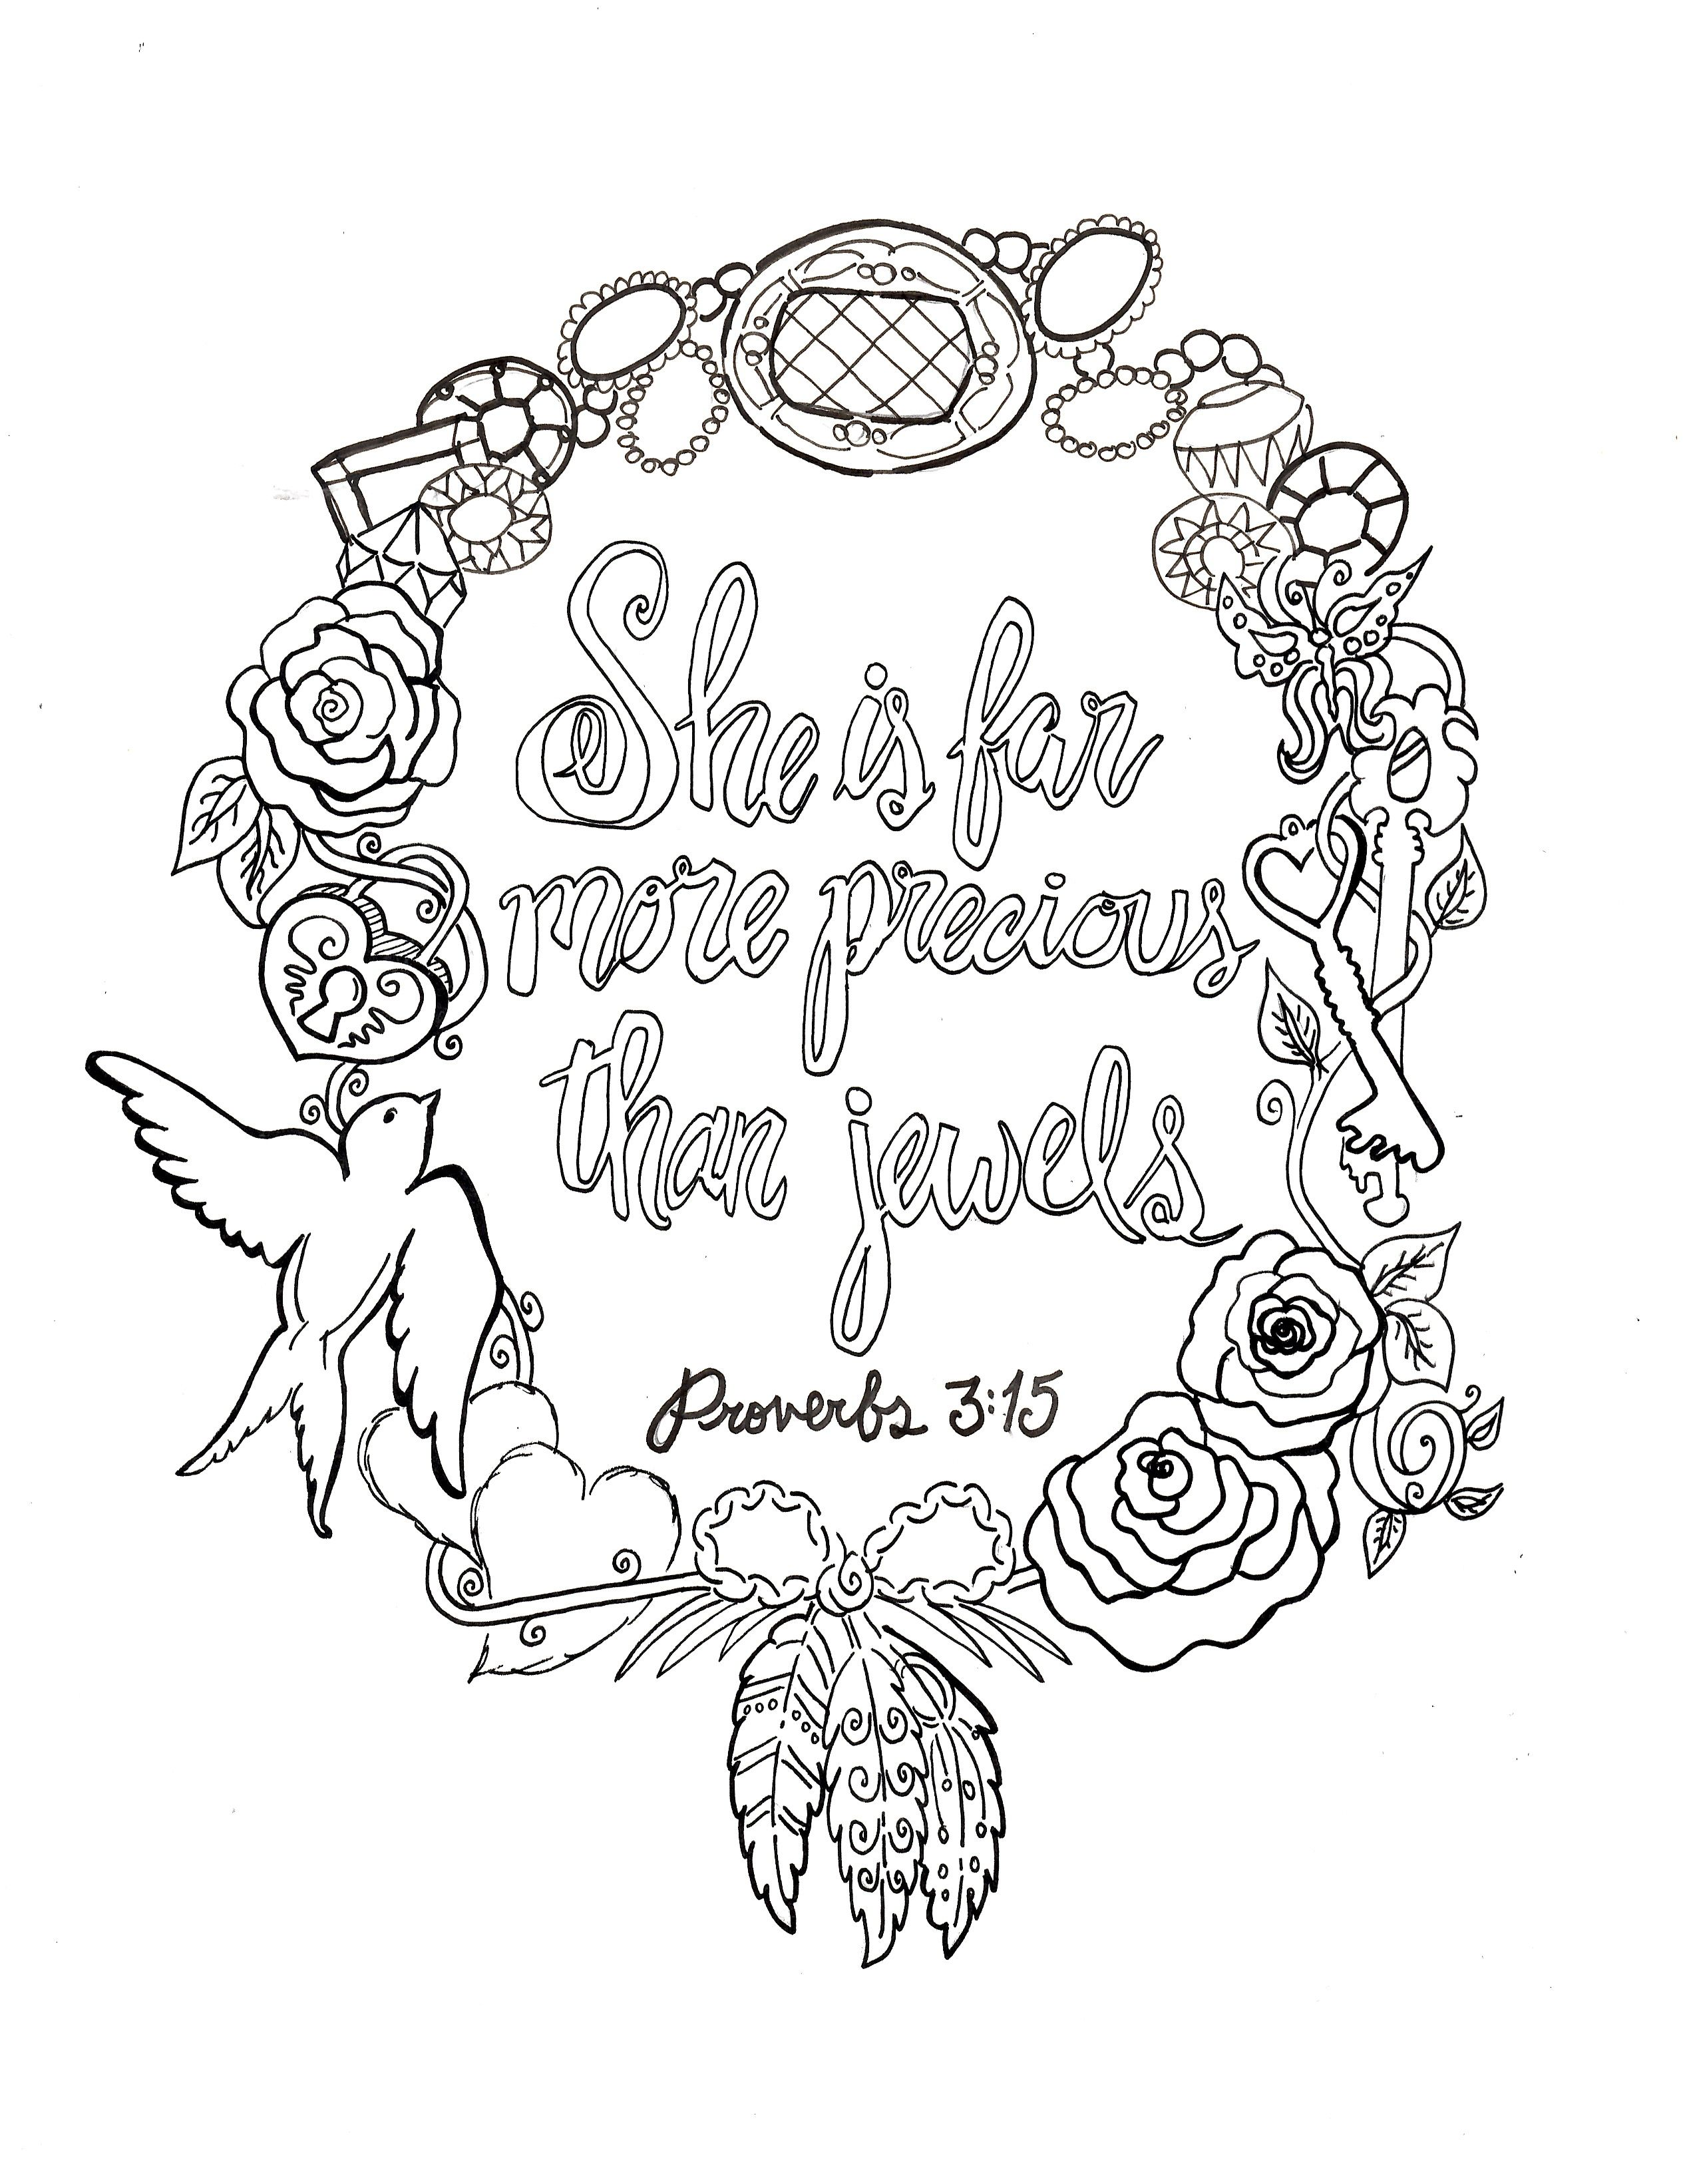 Proverbs 3:15 Printable Free 8x10 Coloring Devotions to